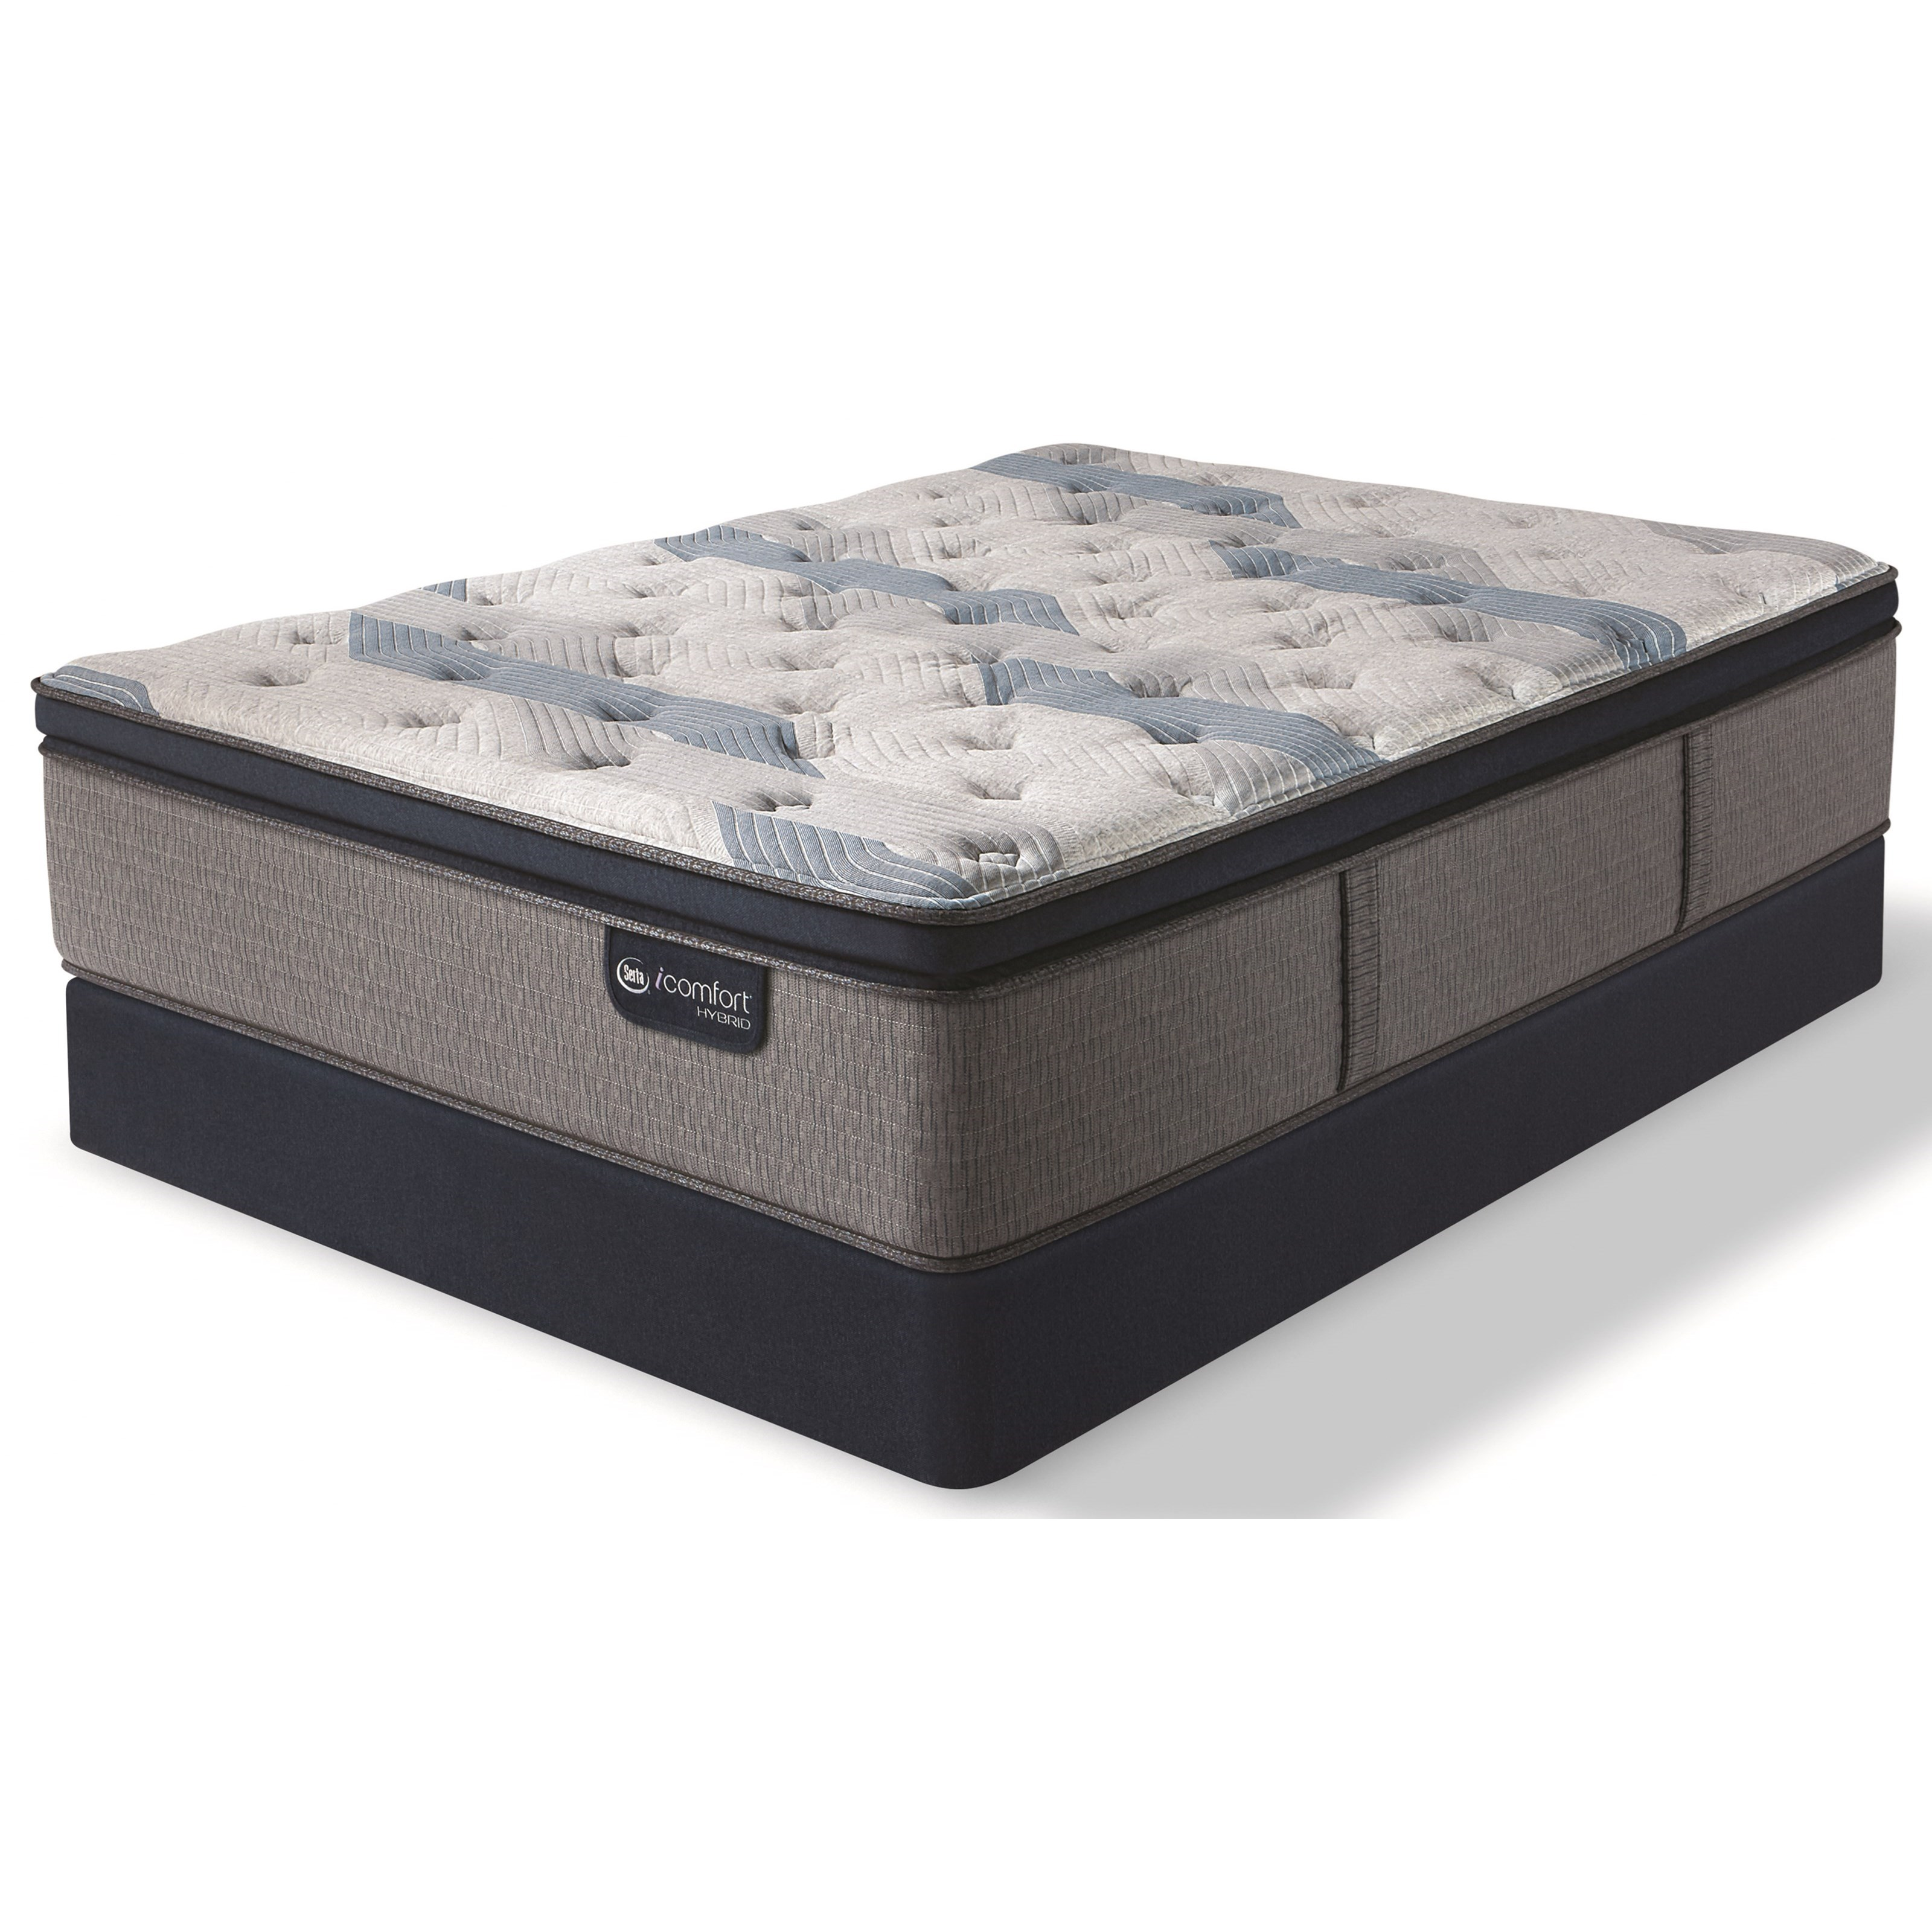 King Plush Pillow Top Hybrid Mattress Set